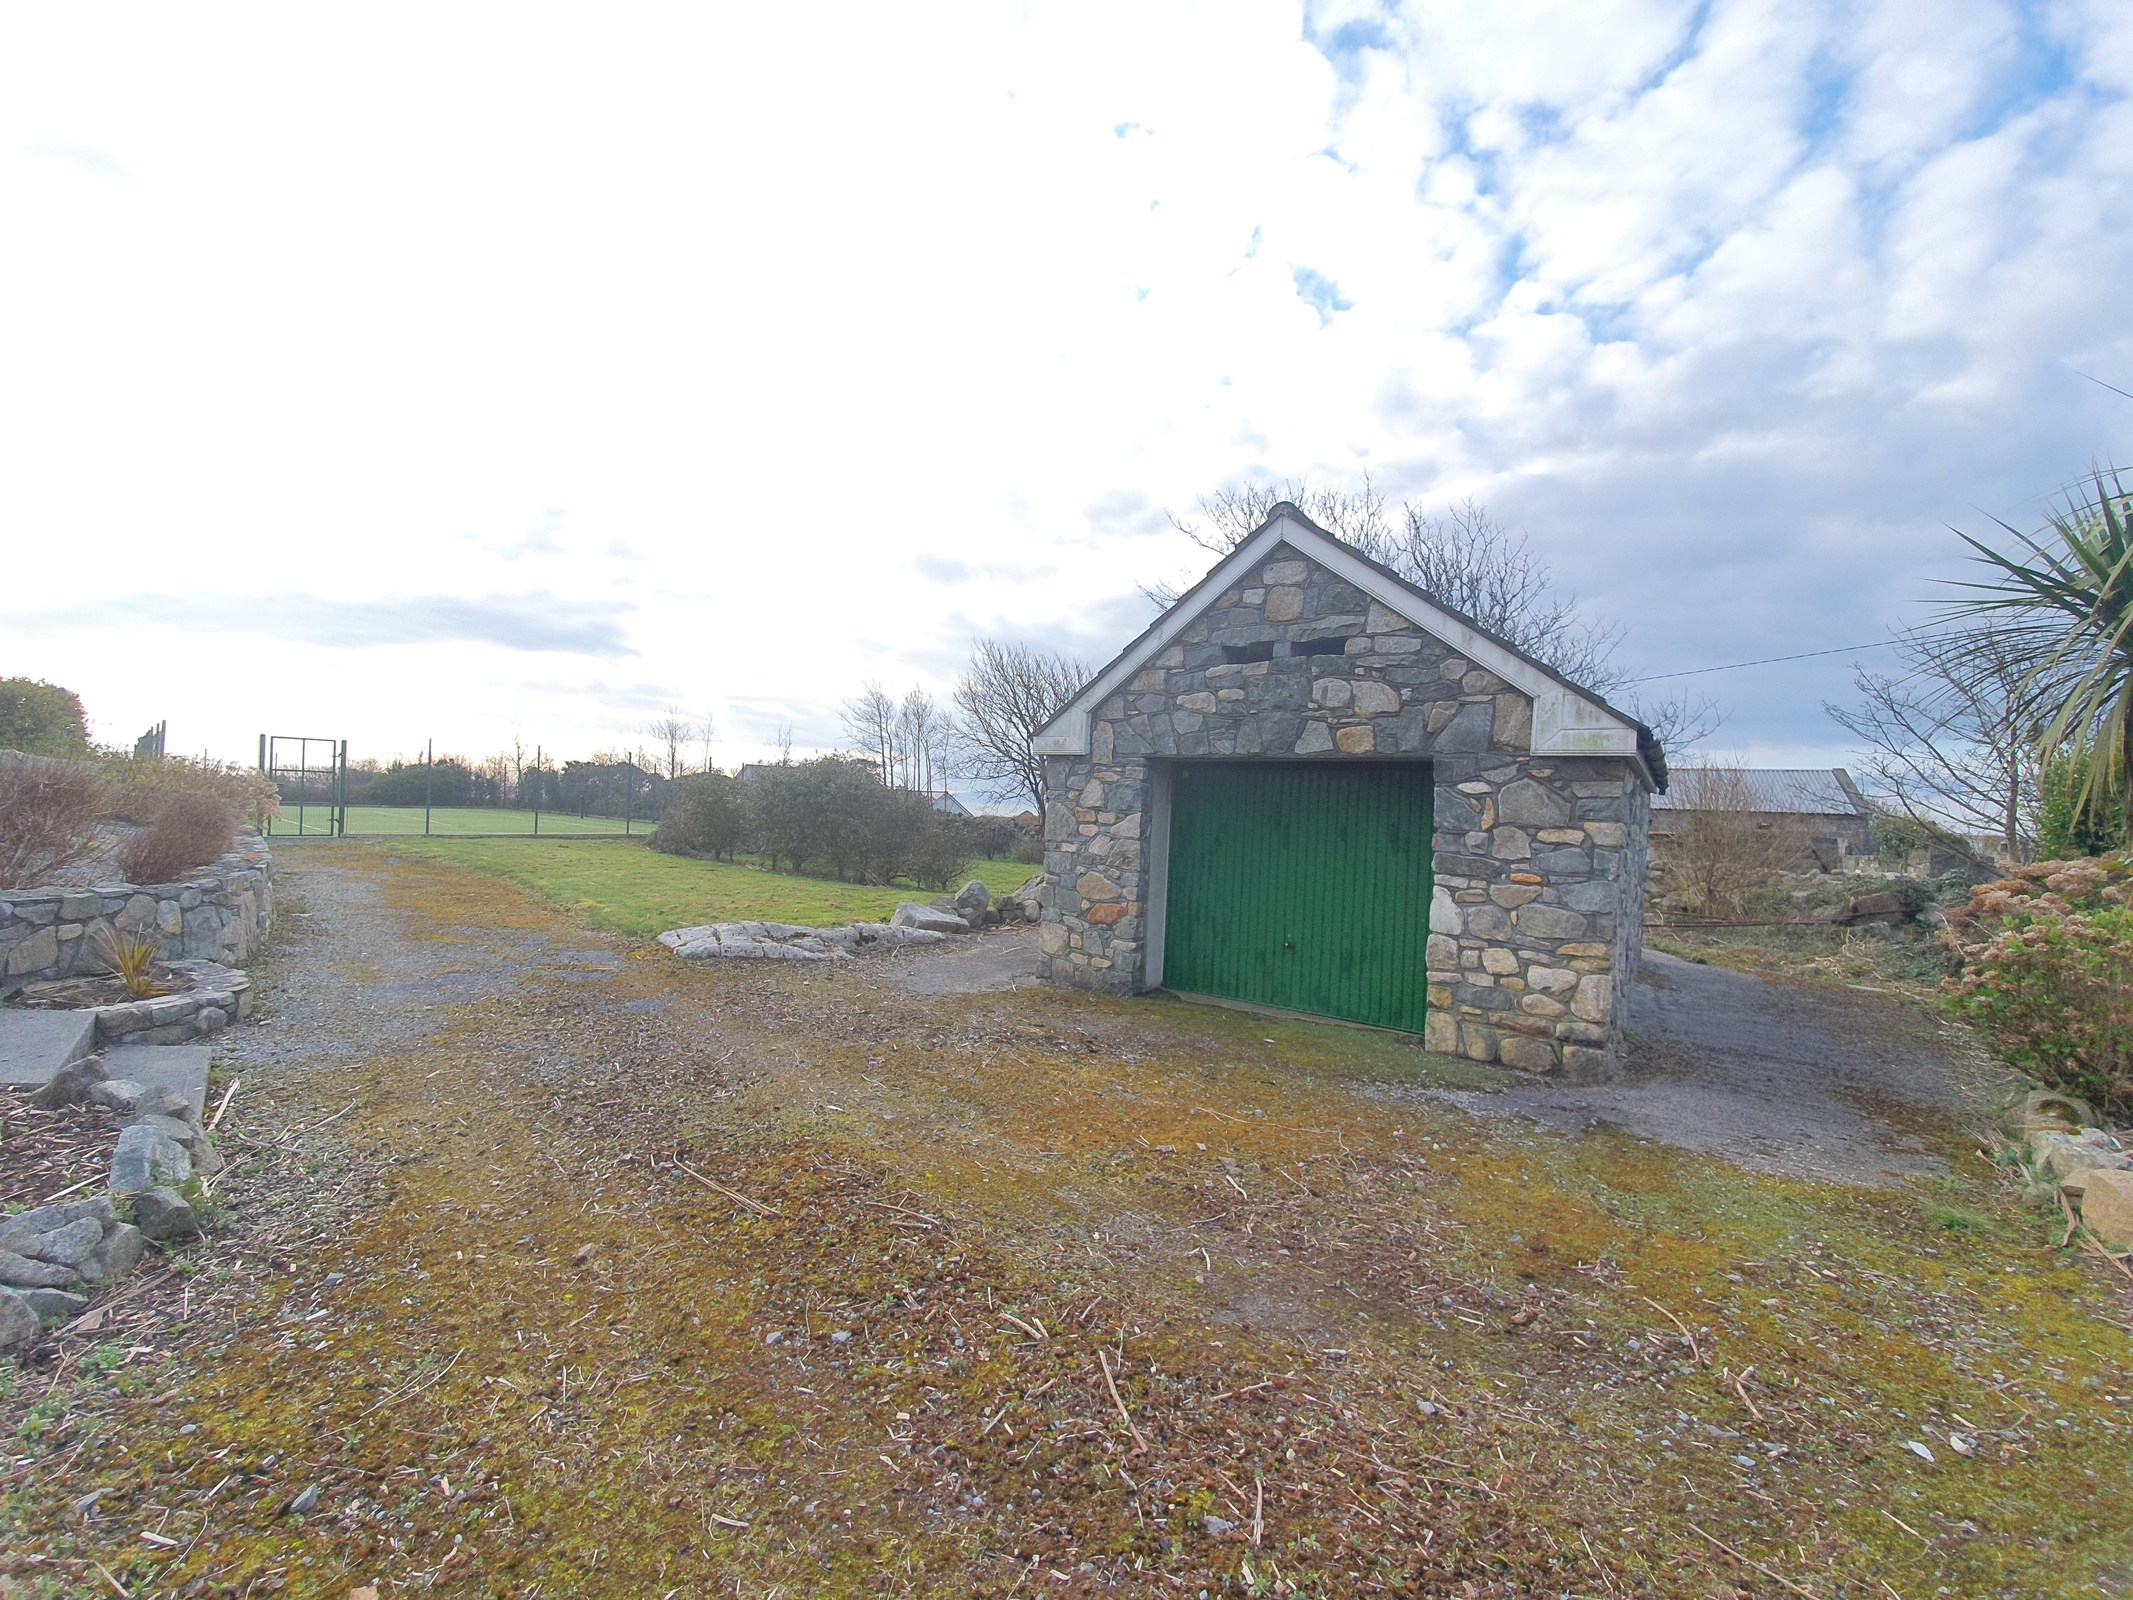 Scailp An Chait, Inverin, Co. Galway